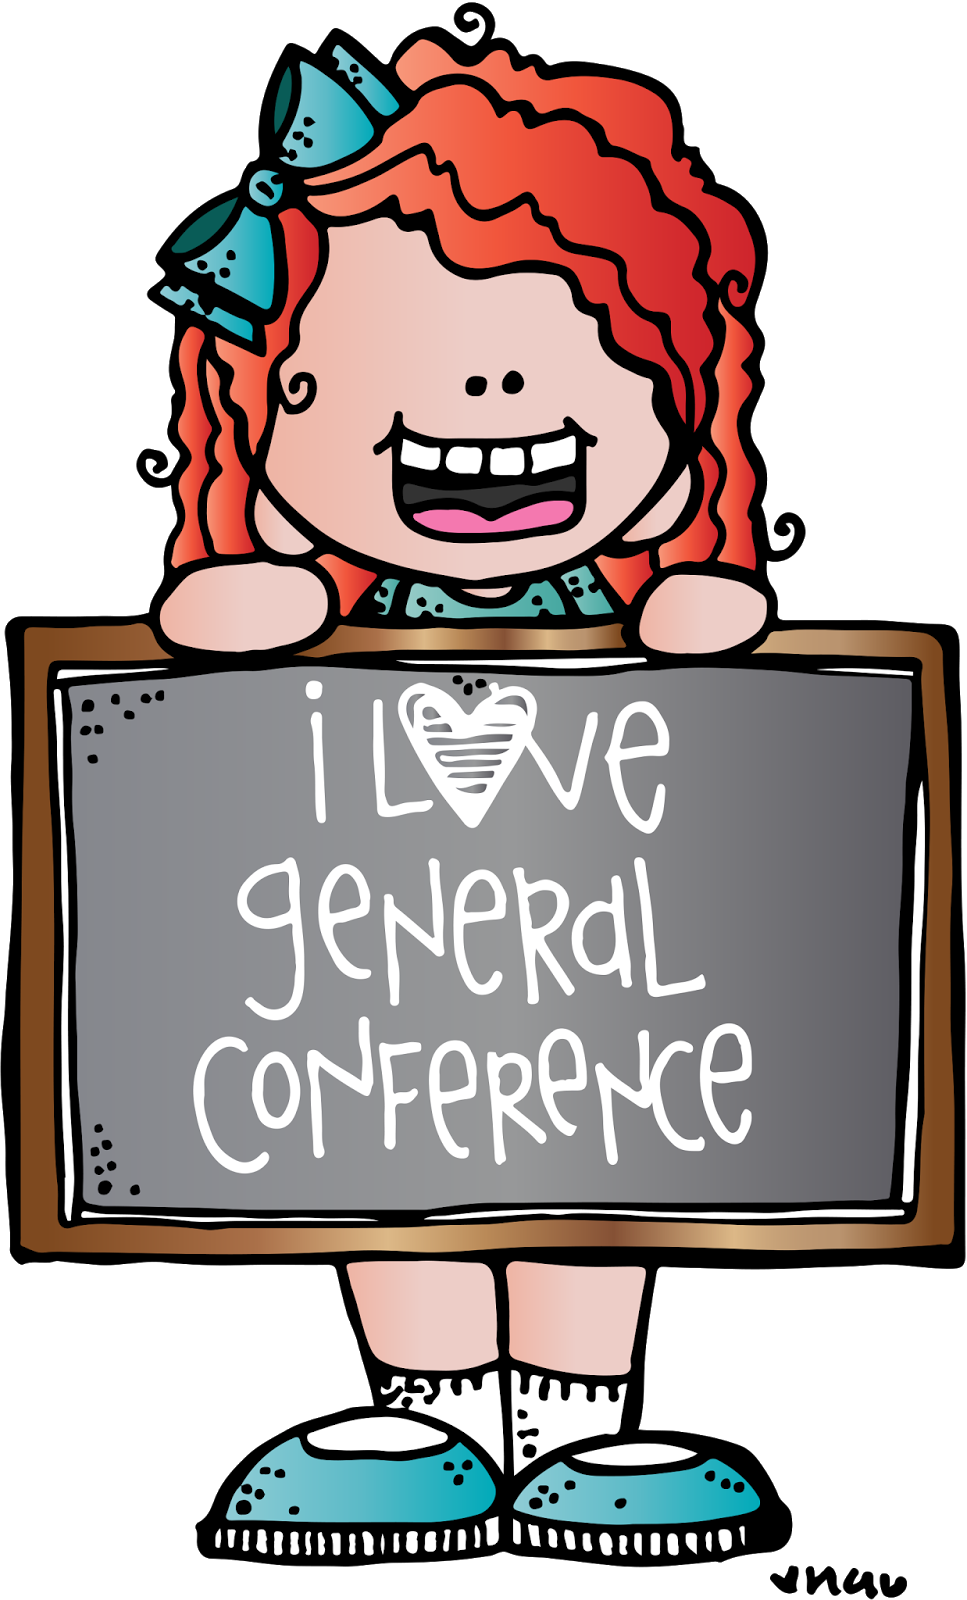 Conference clipart student writing, Conference student.